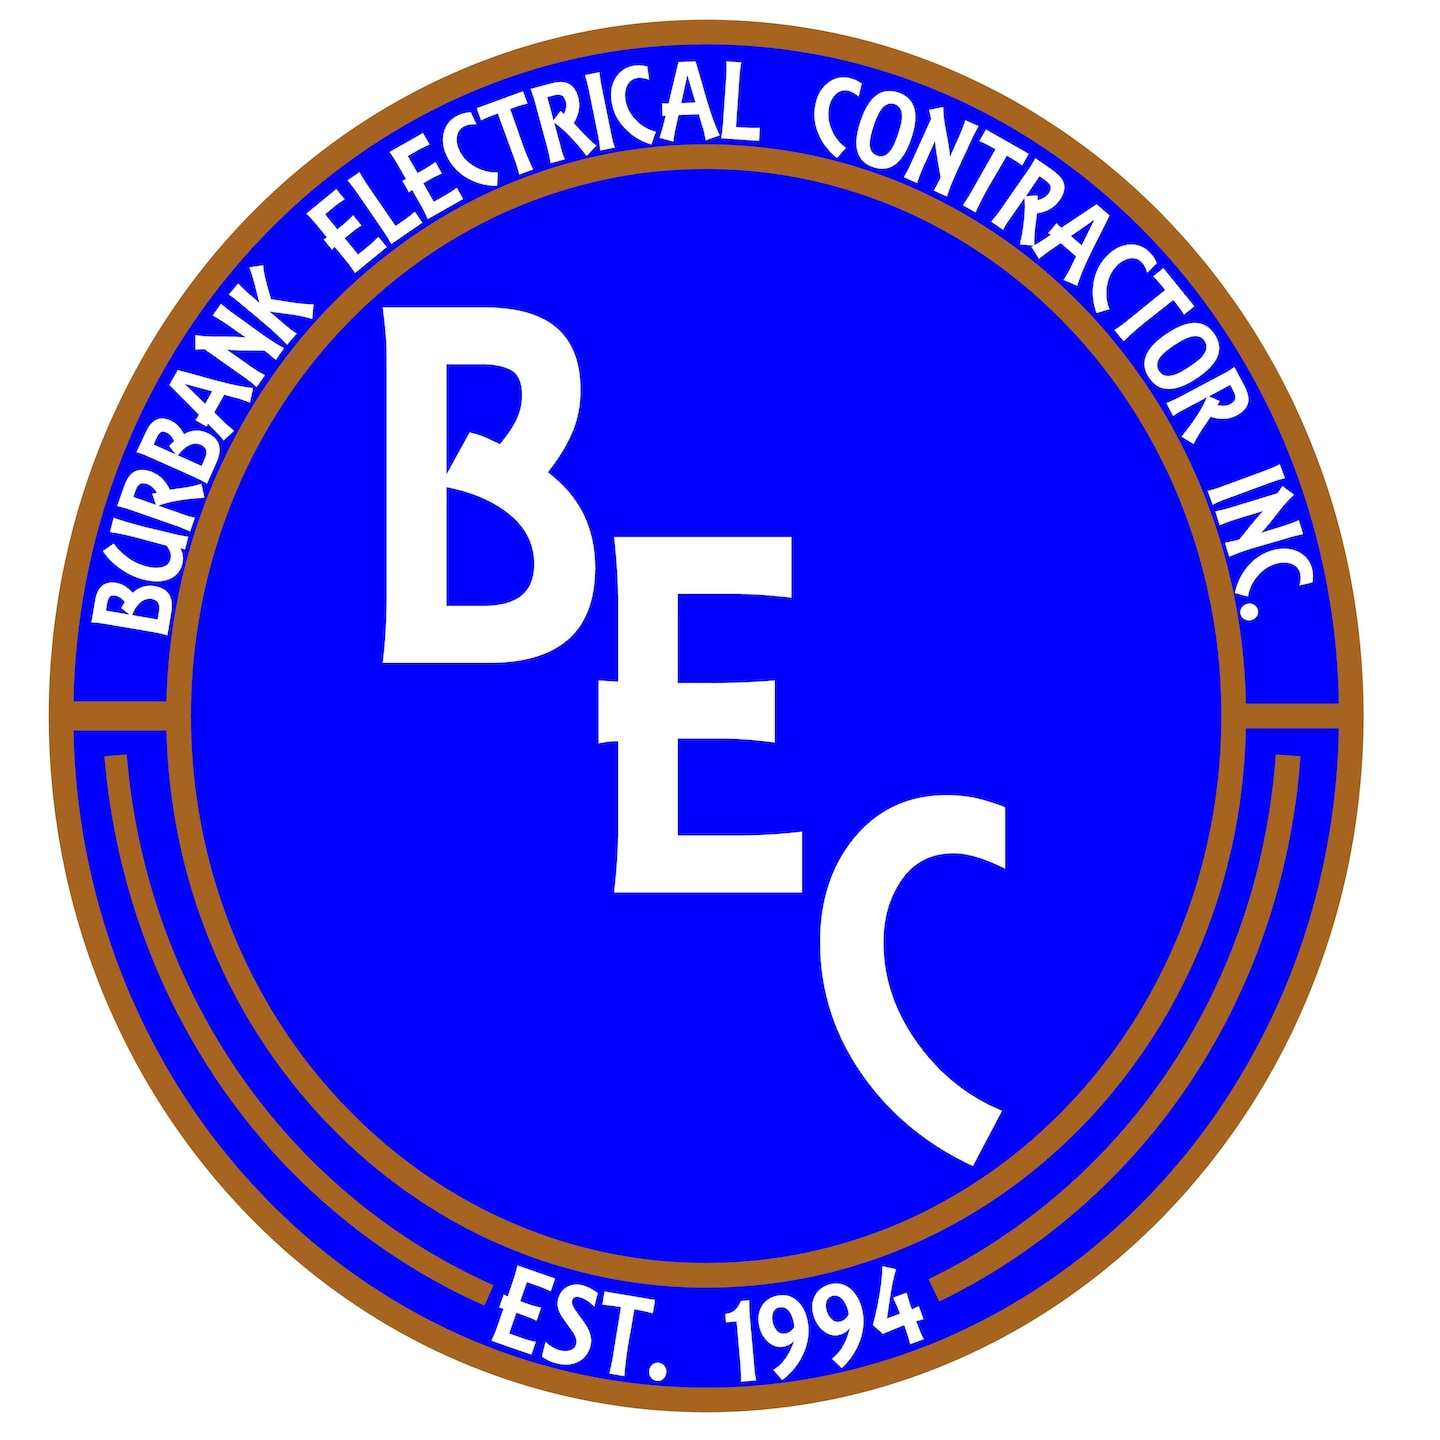 Burbank Electrical Contractor, Inc.